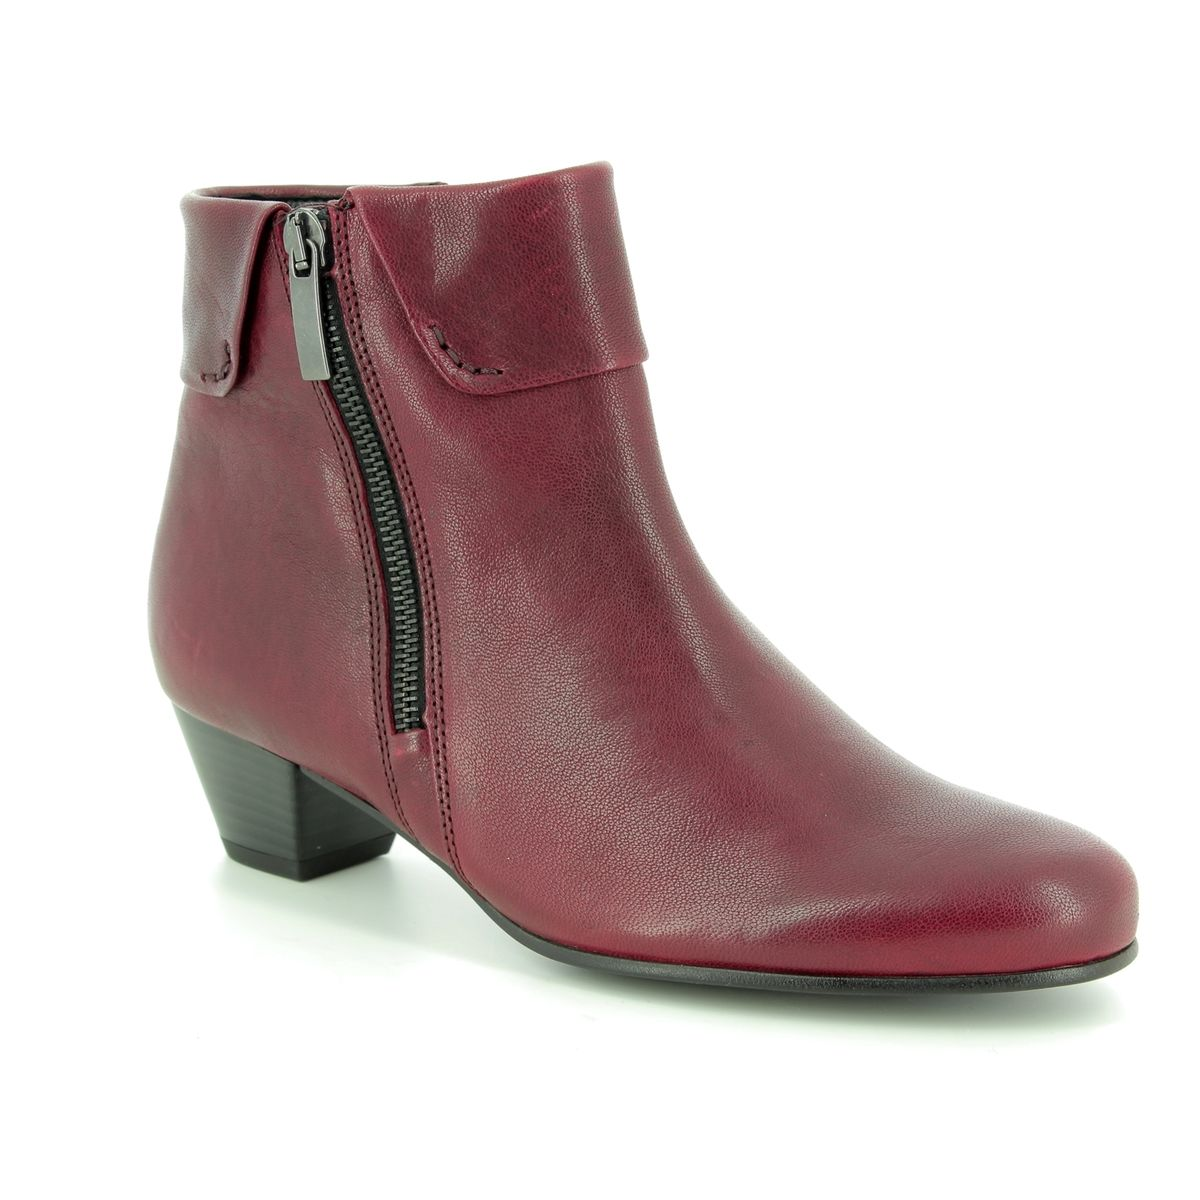 beed65ea33e Gabor Ankle Boots - Dark Red - 96.073.28 ROYSTON